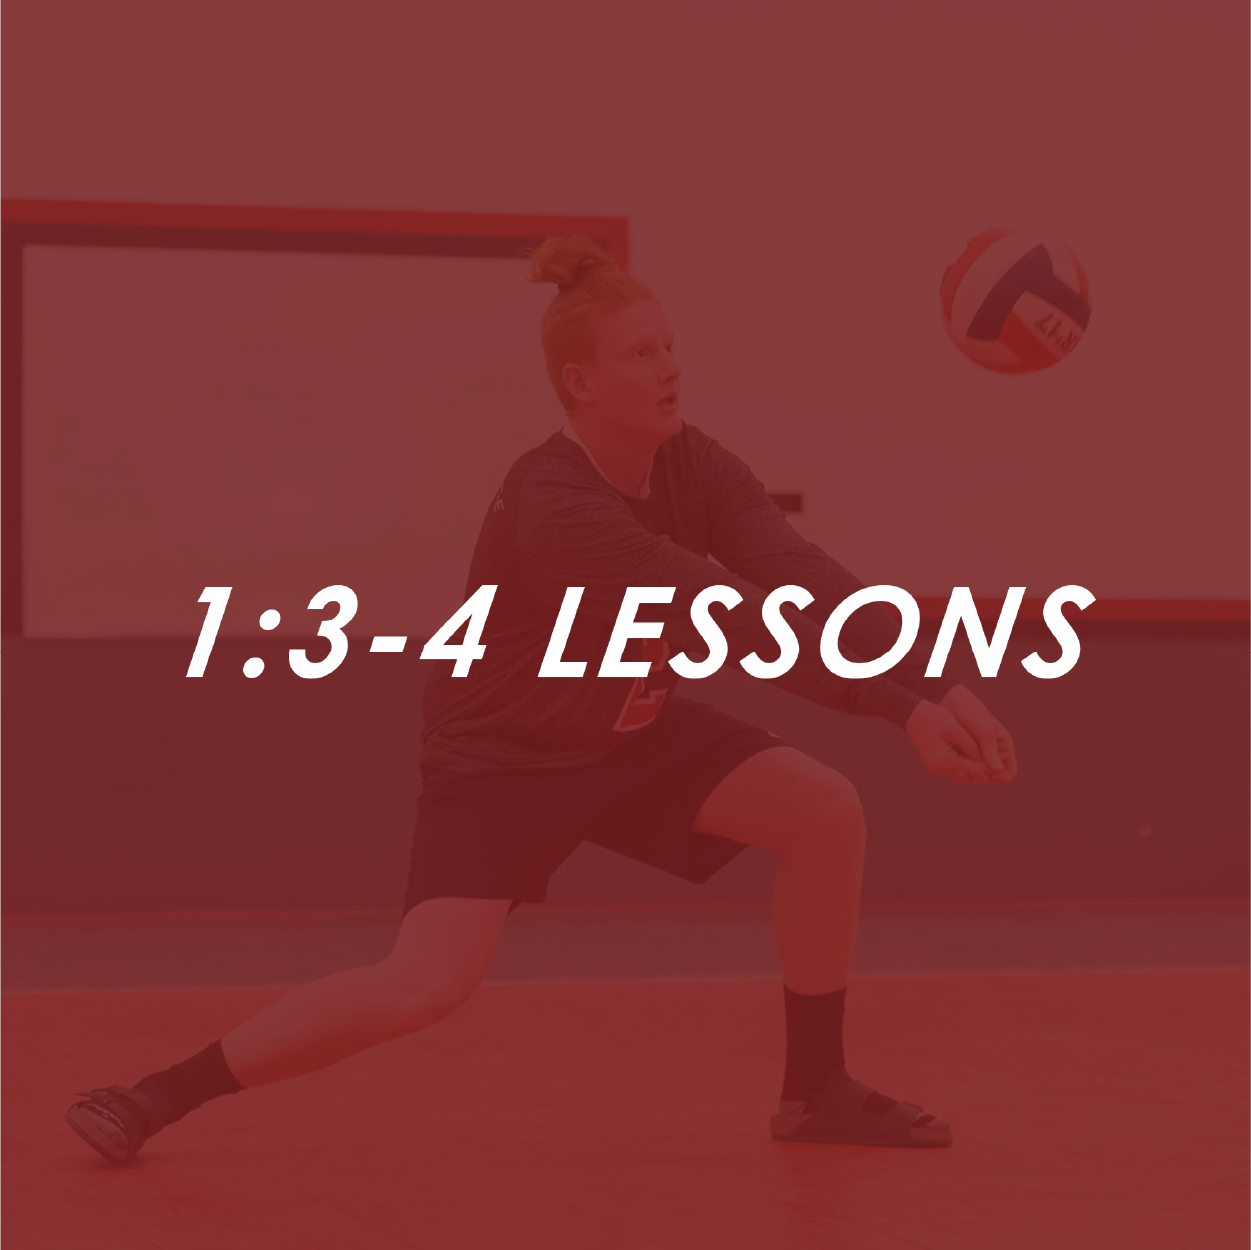 https://frvbc.com/wp-content/uploads/2021/02/FR-Bookings1-3-4-Lessons.png